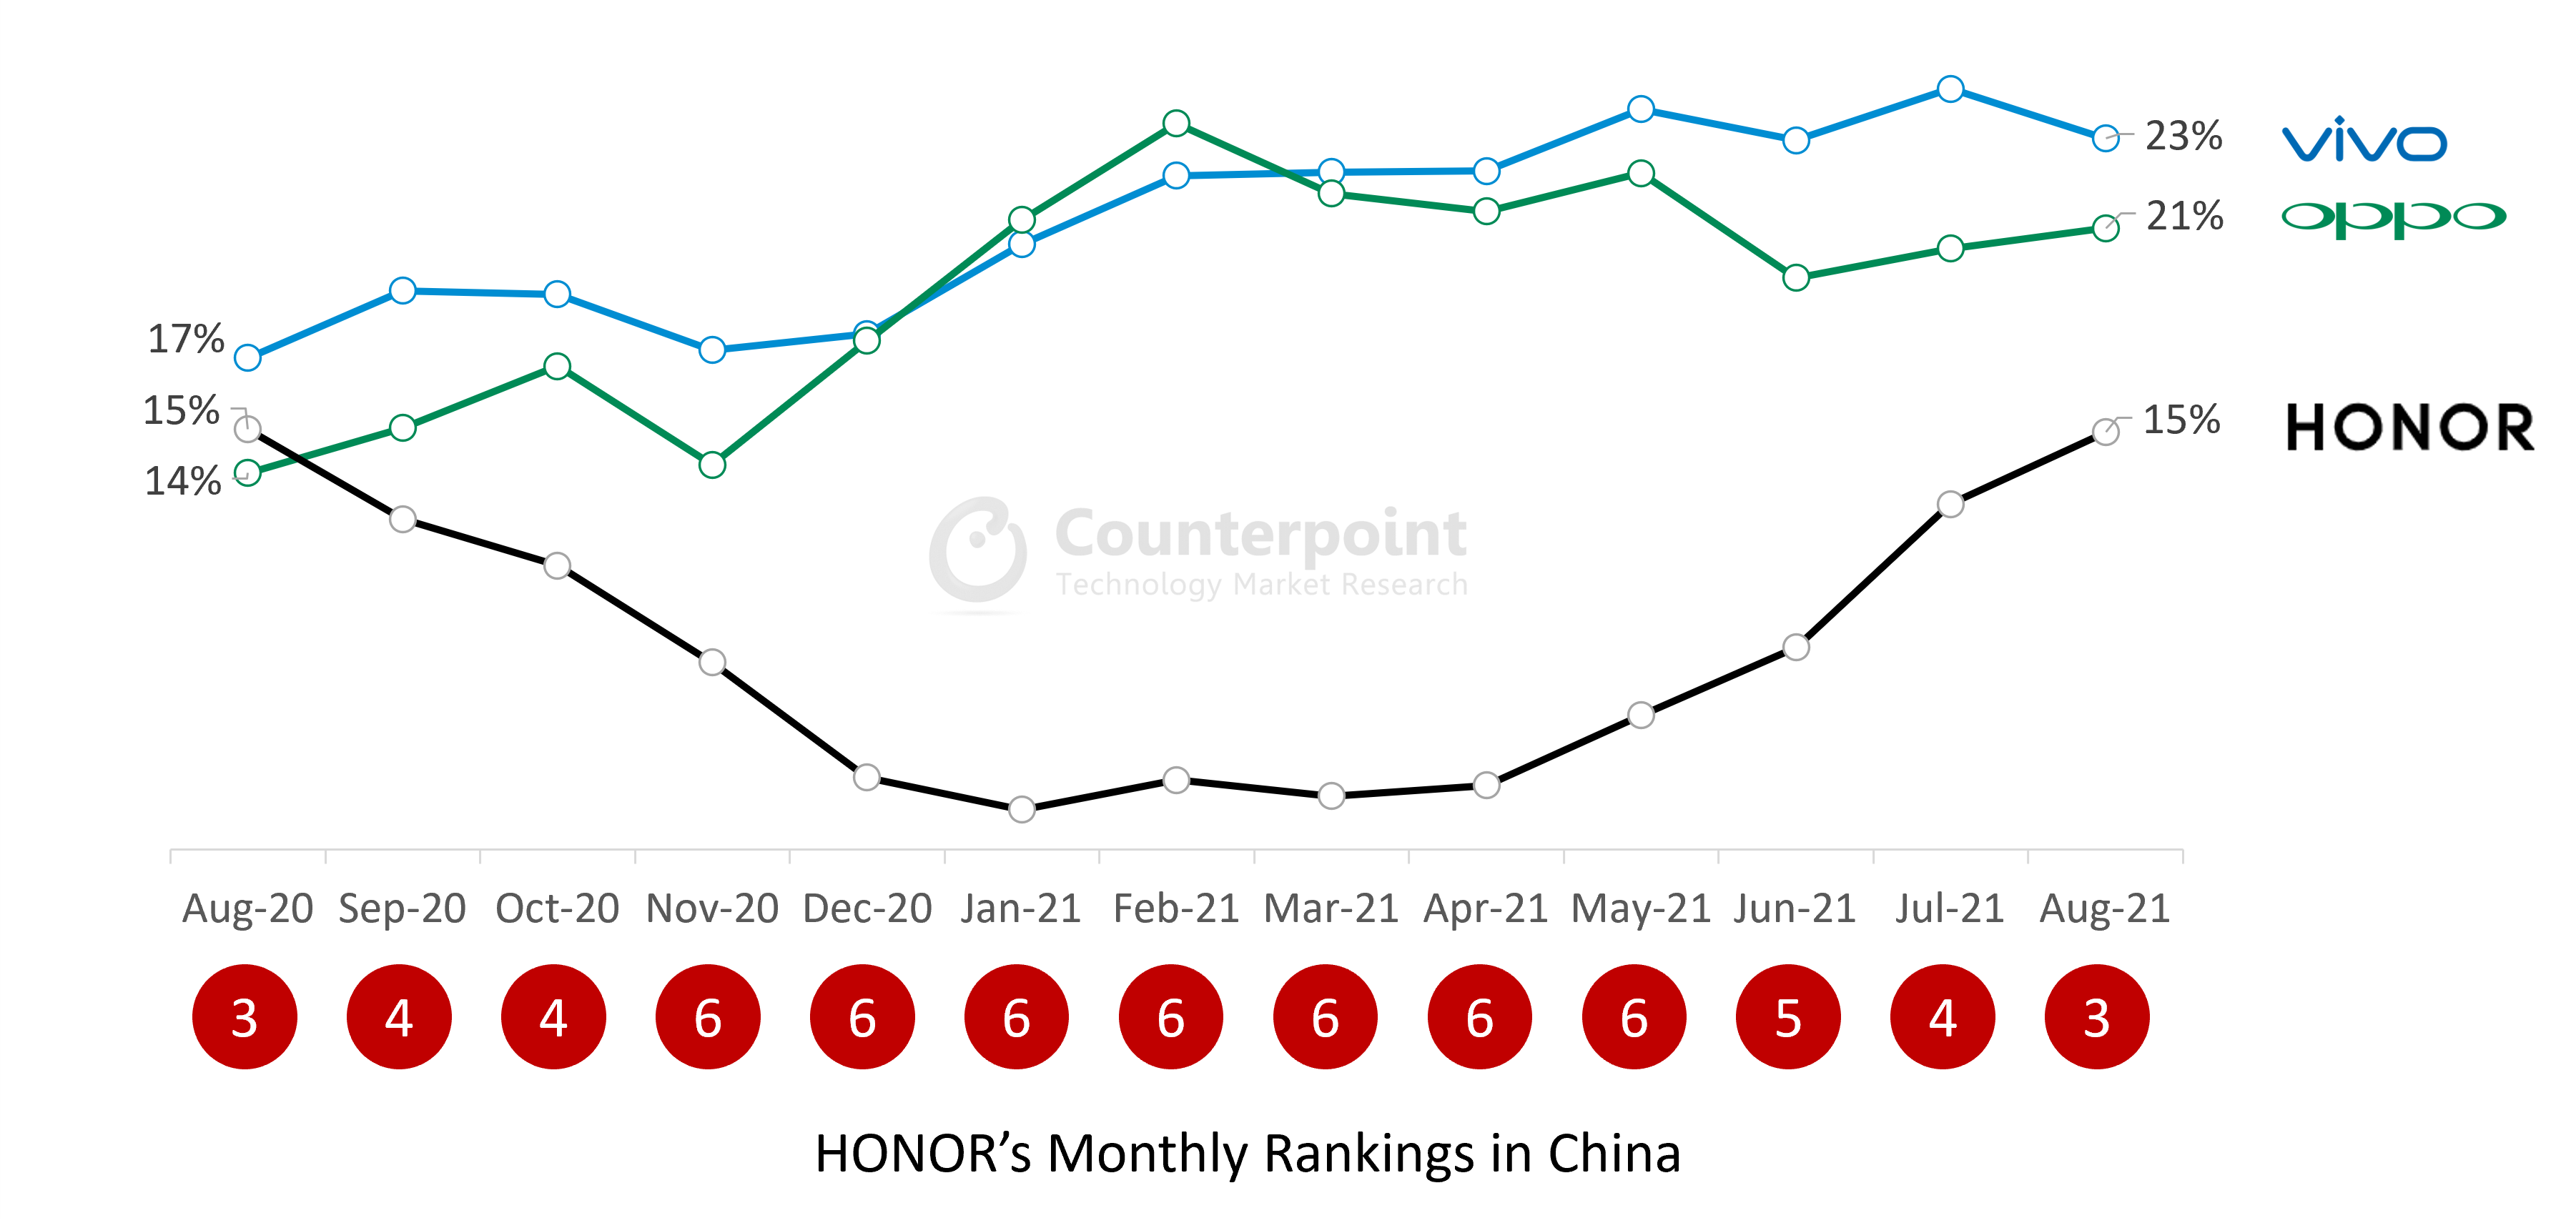 China Smartphone Sales: Top 3 Brands' Share in August 2021 and HONOR Rankings